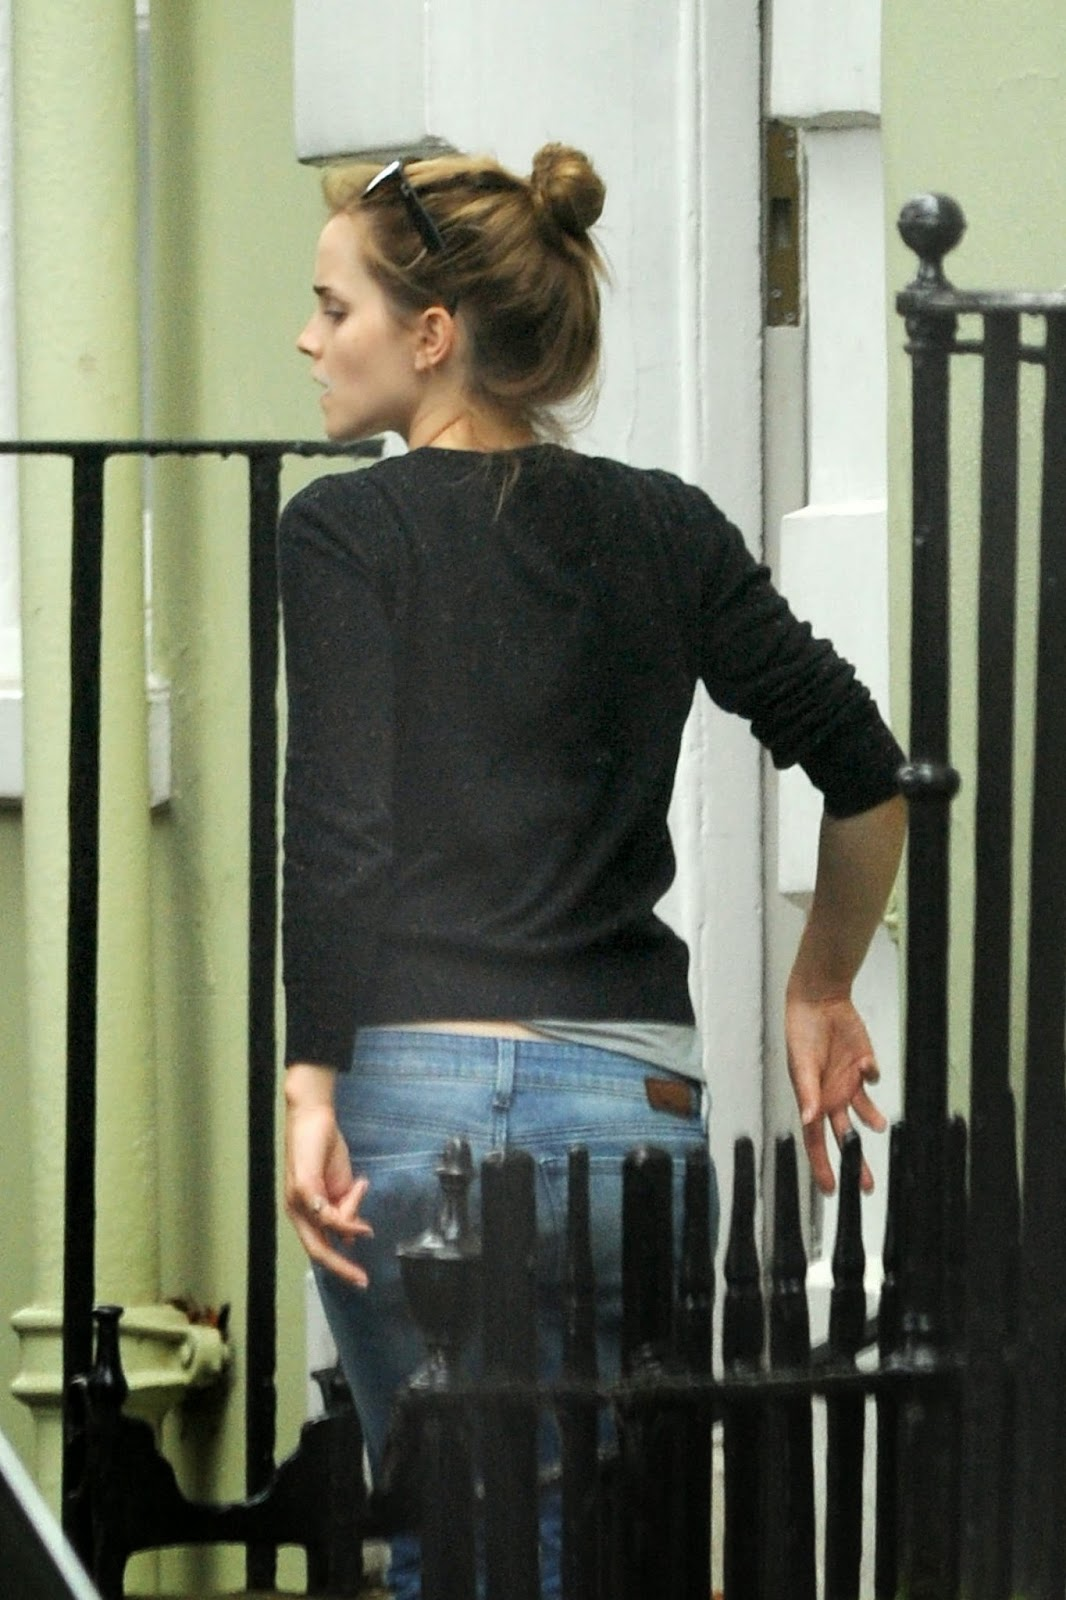 Emma Watson Packing Stuff to Move to London